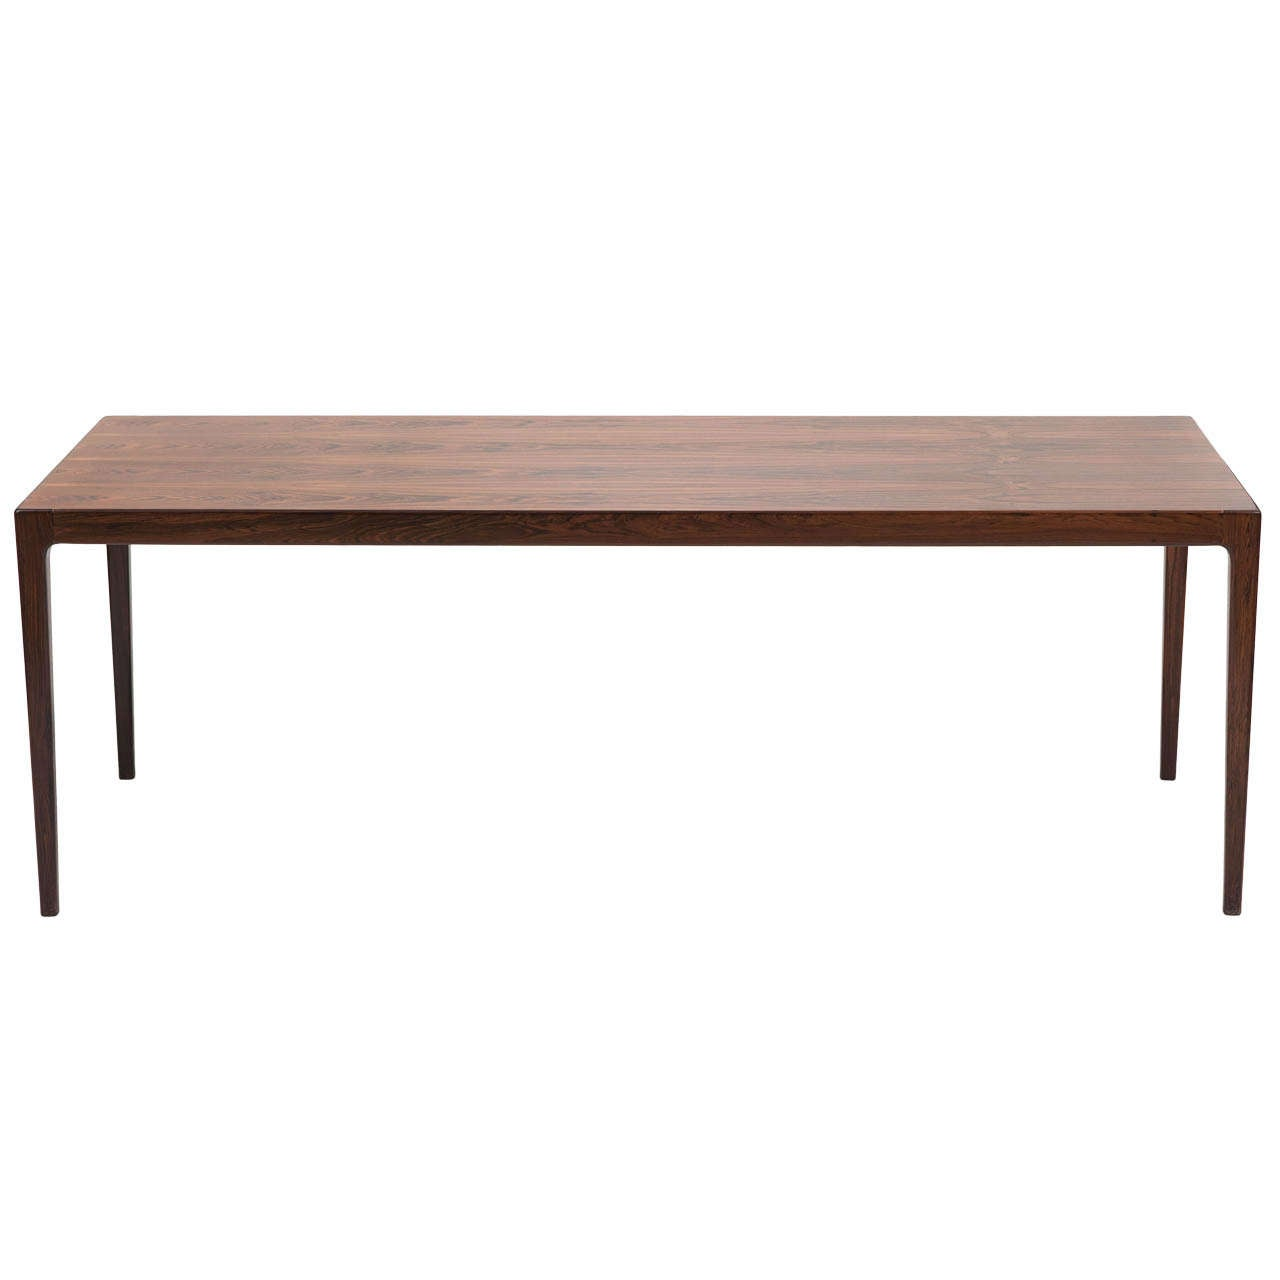 An Elegant Danish Rosewood Coffee Table At 1stdibs